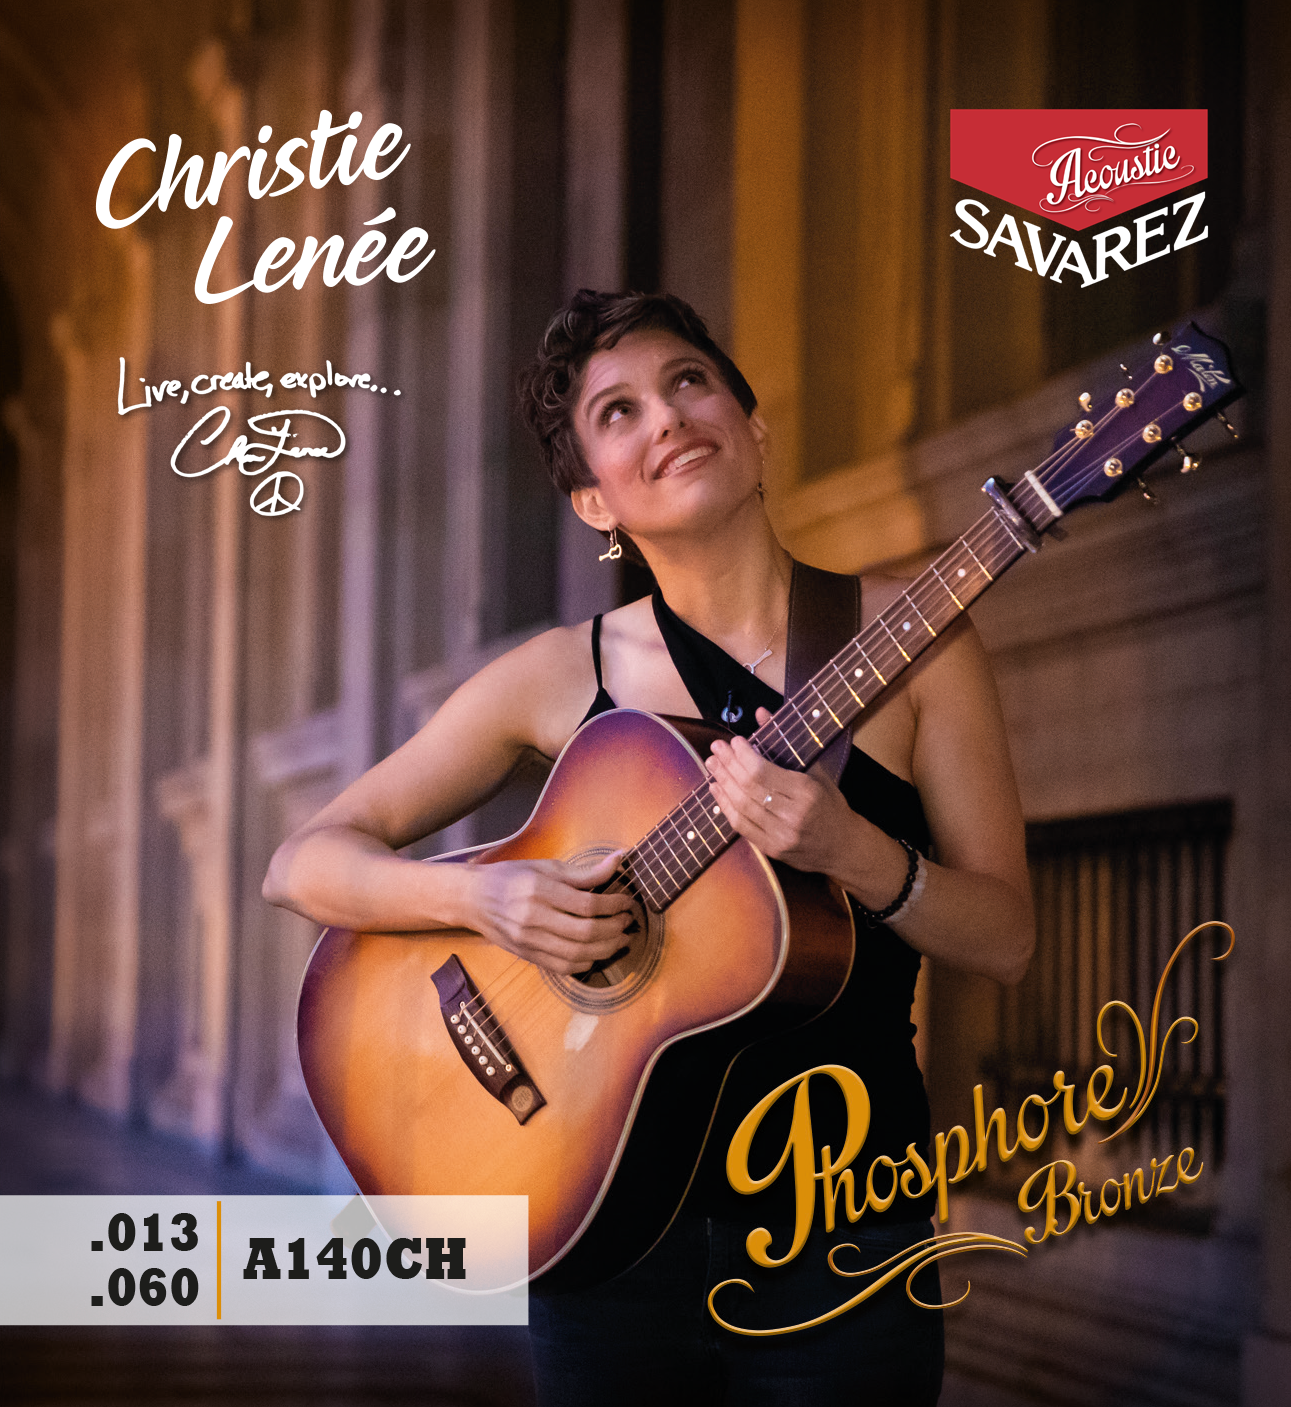 SAVAREZ CHRISTIE LENEE SET